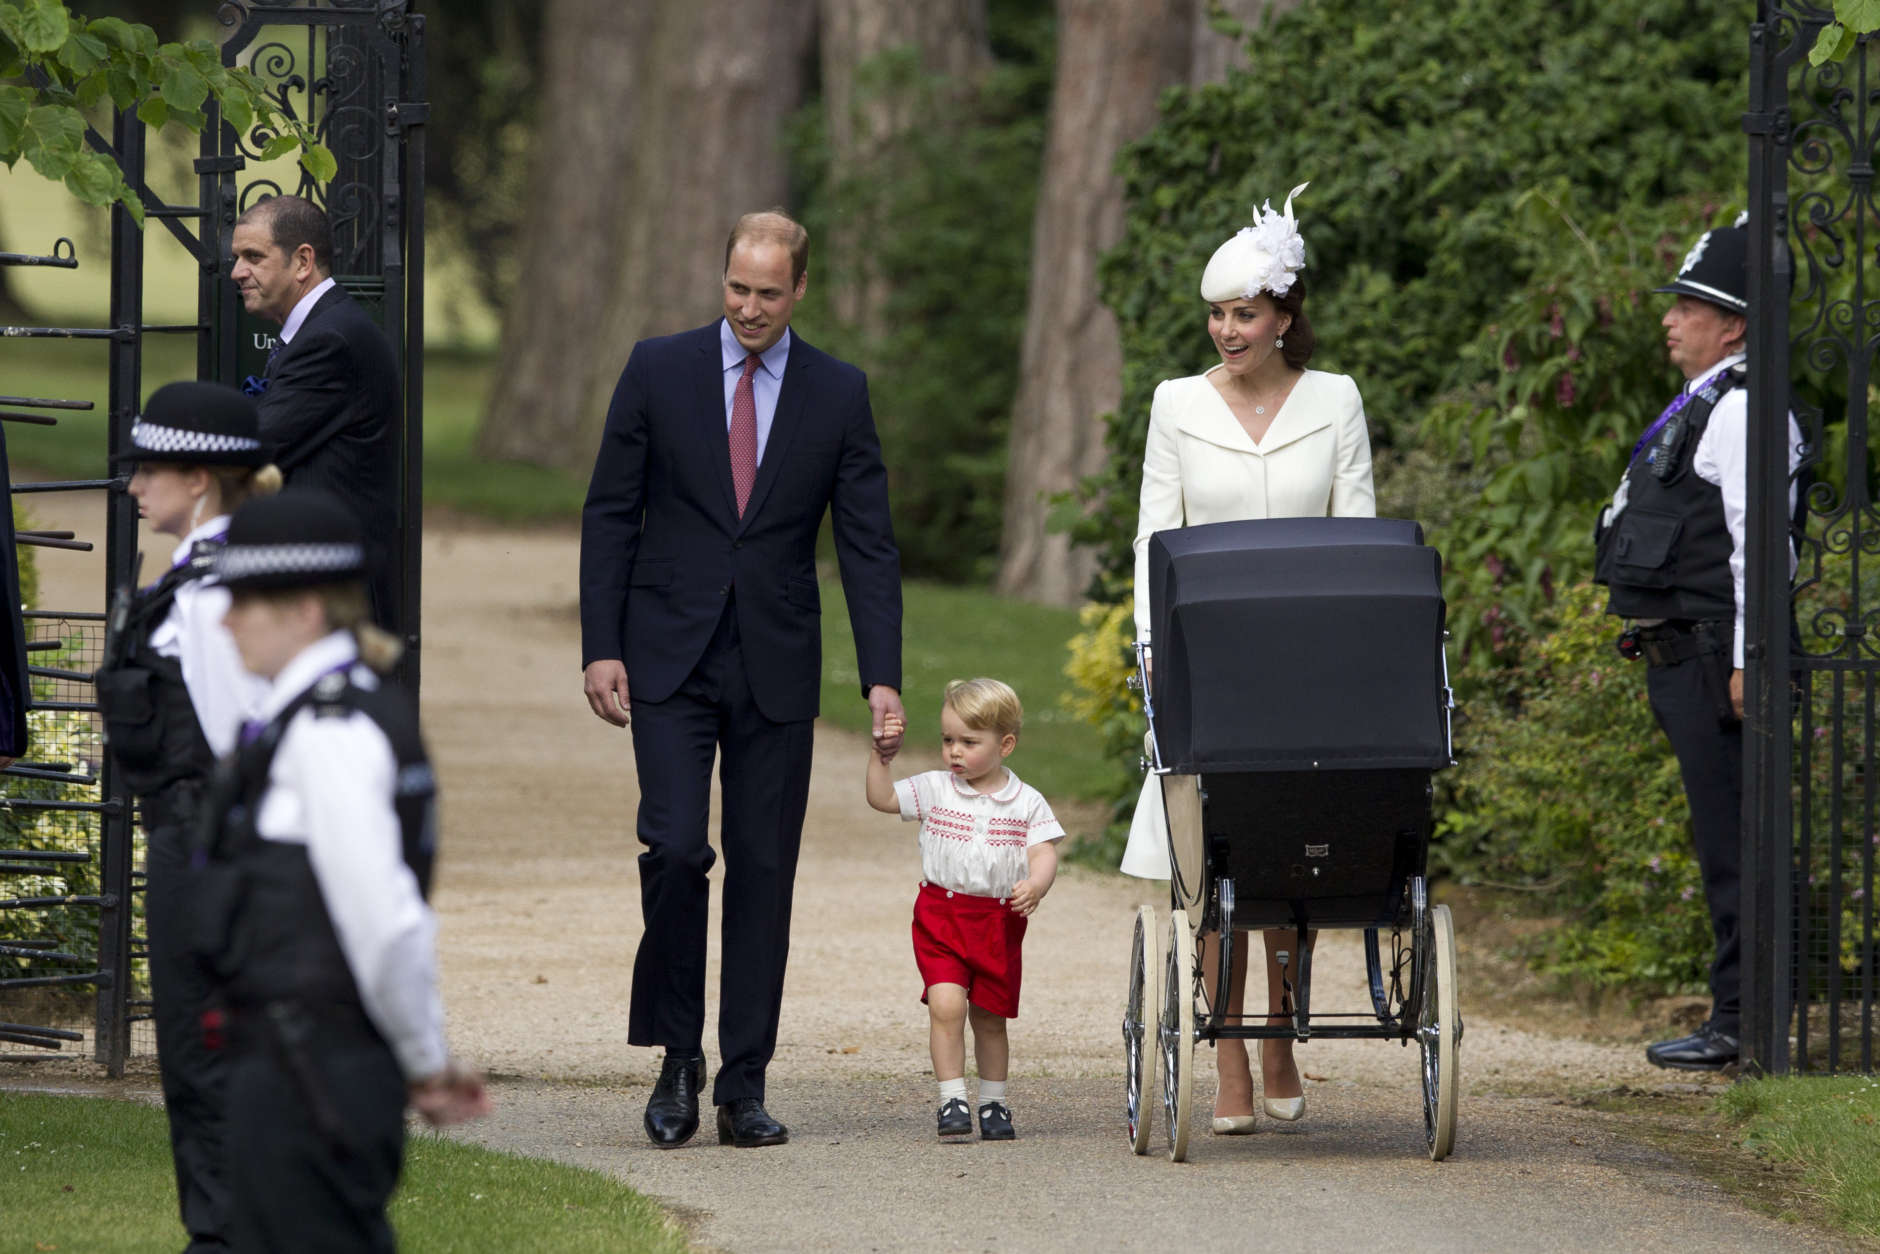 """FILE- In this file photo dated Sunday, July 5, 2015, Britain's Prince William, Kate the Duchess of Cambridge, their son Prince George walk with their daughter Princess Charlotte in a pram, during an official media event as they arrive for Charlotte's Christening at St. Mary Magdalene Church in Sandringham, England.  Royal officials at Kensington Palace are urging all media organizations not to publish images of Prince George and Princess Charlotte, by some paparazzi photographers who are using increasingly dangerous tactics to snap images of the royals, which presents a risk """"in a heightened security environment.'' (AP Photo/Matt Dunham, FILE)"""